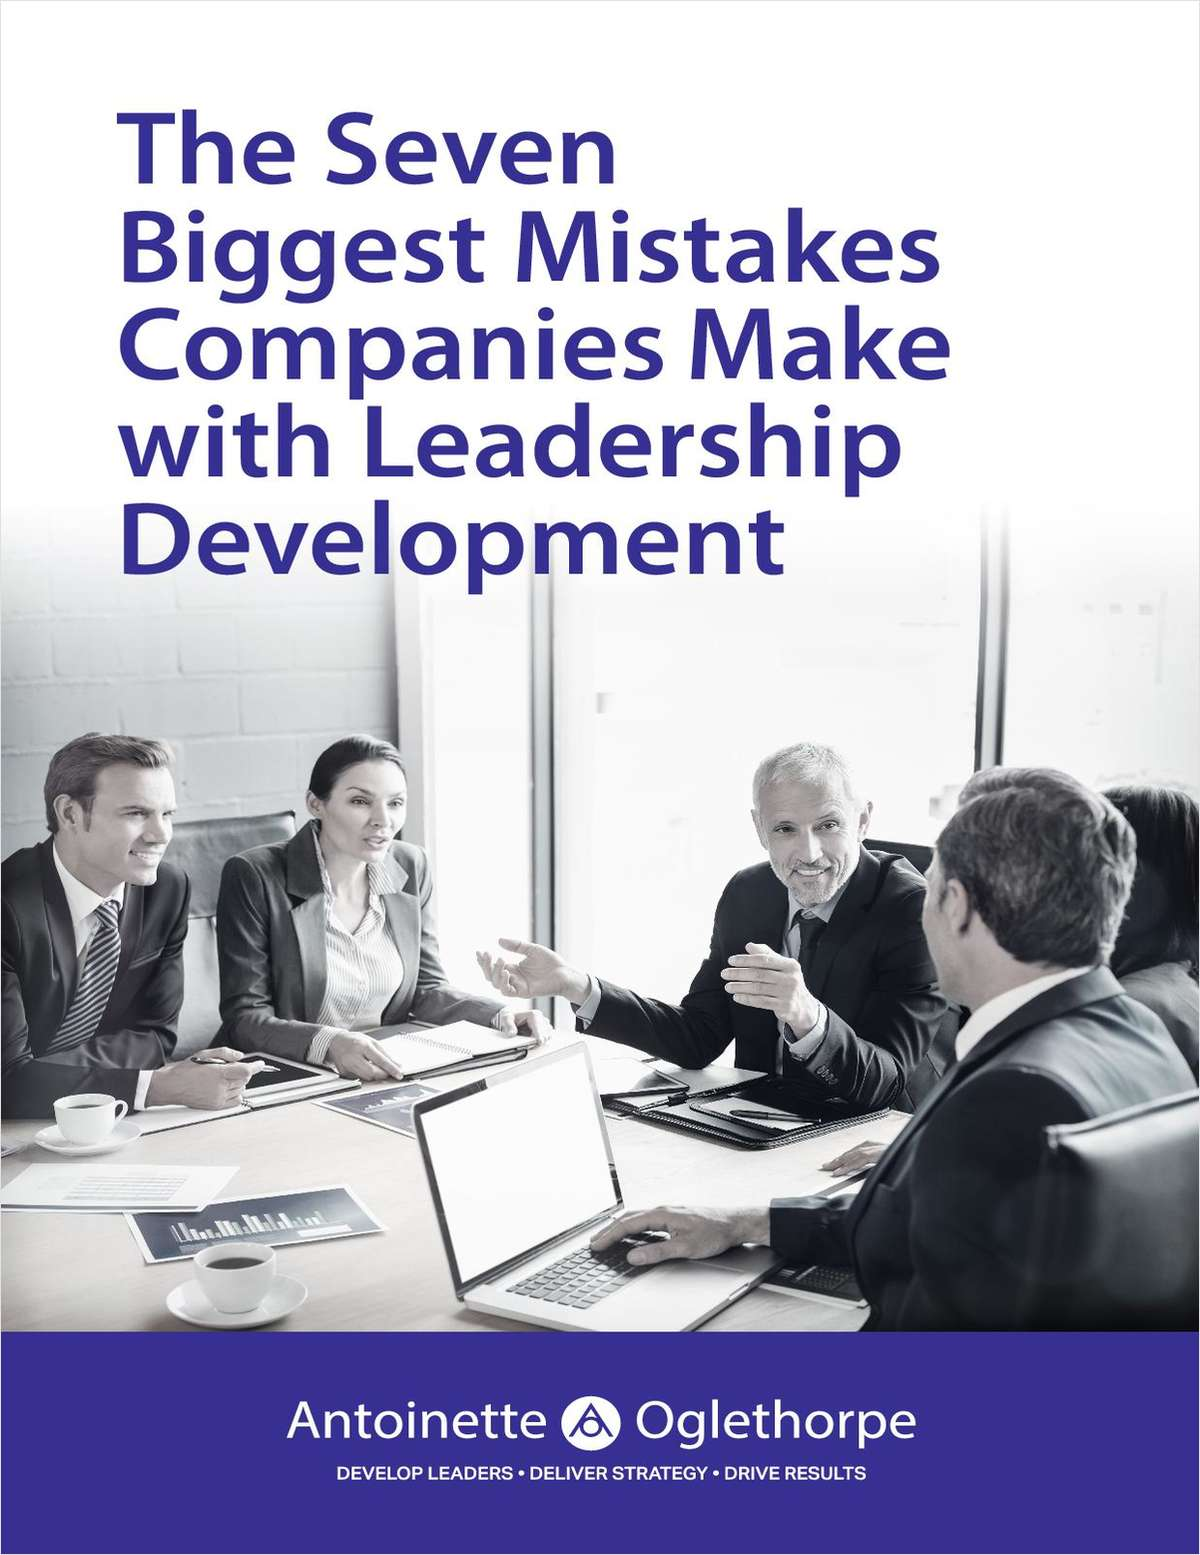 The Seven Biggest Mistakes Companies Make with Leadership Development